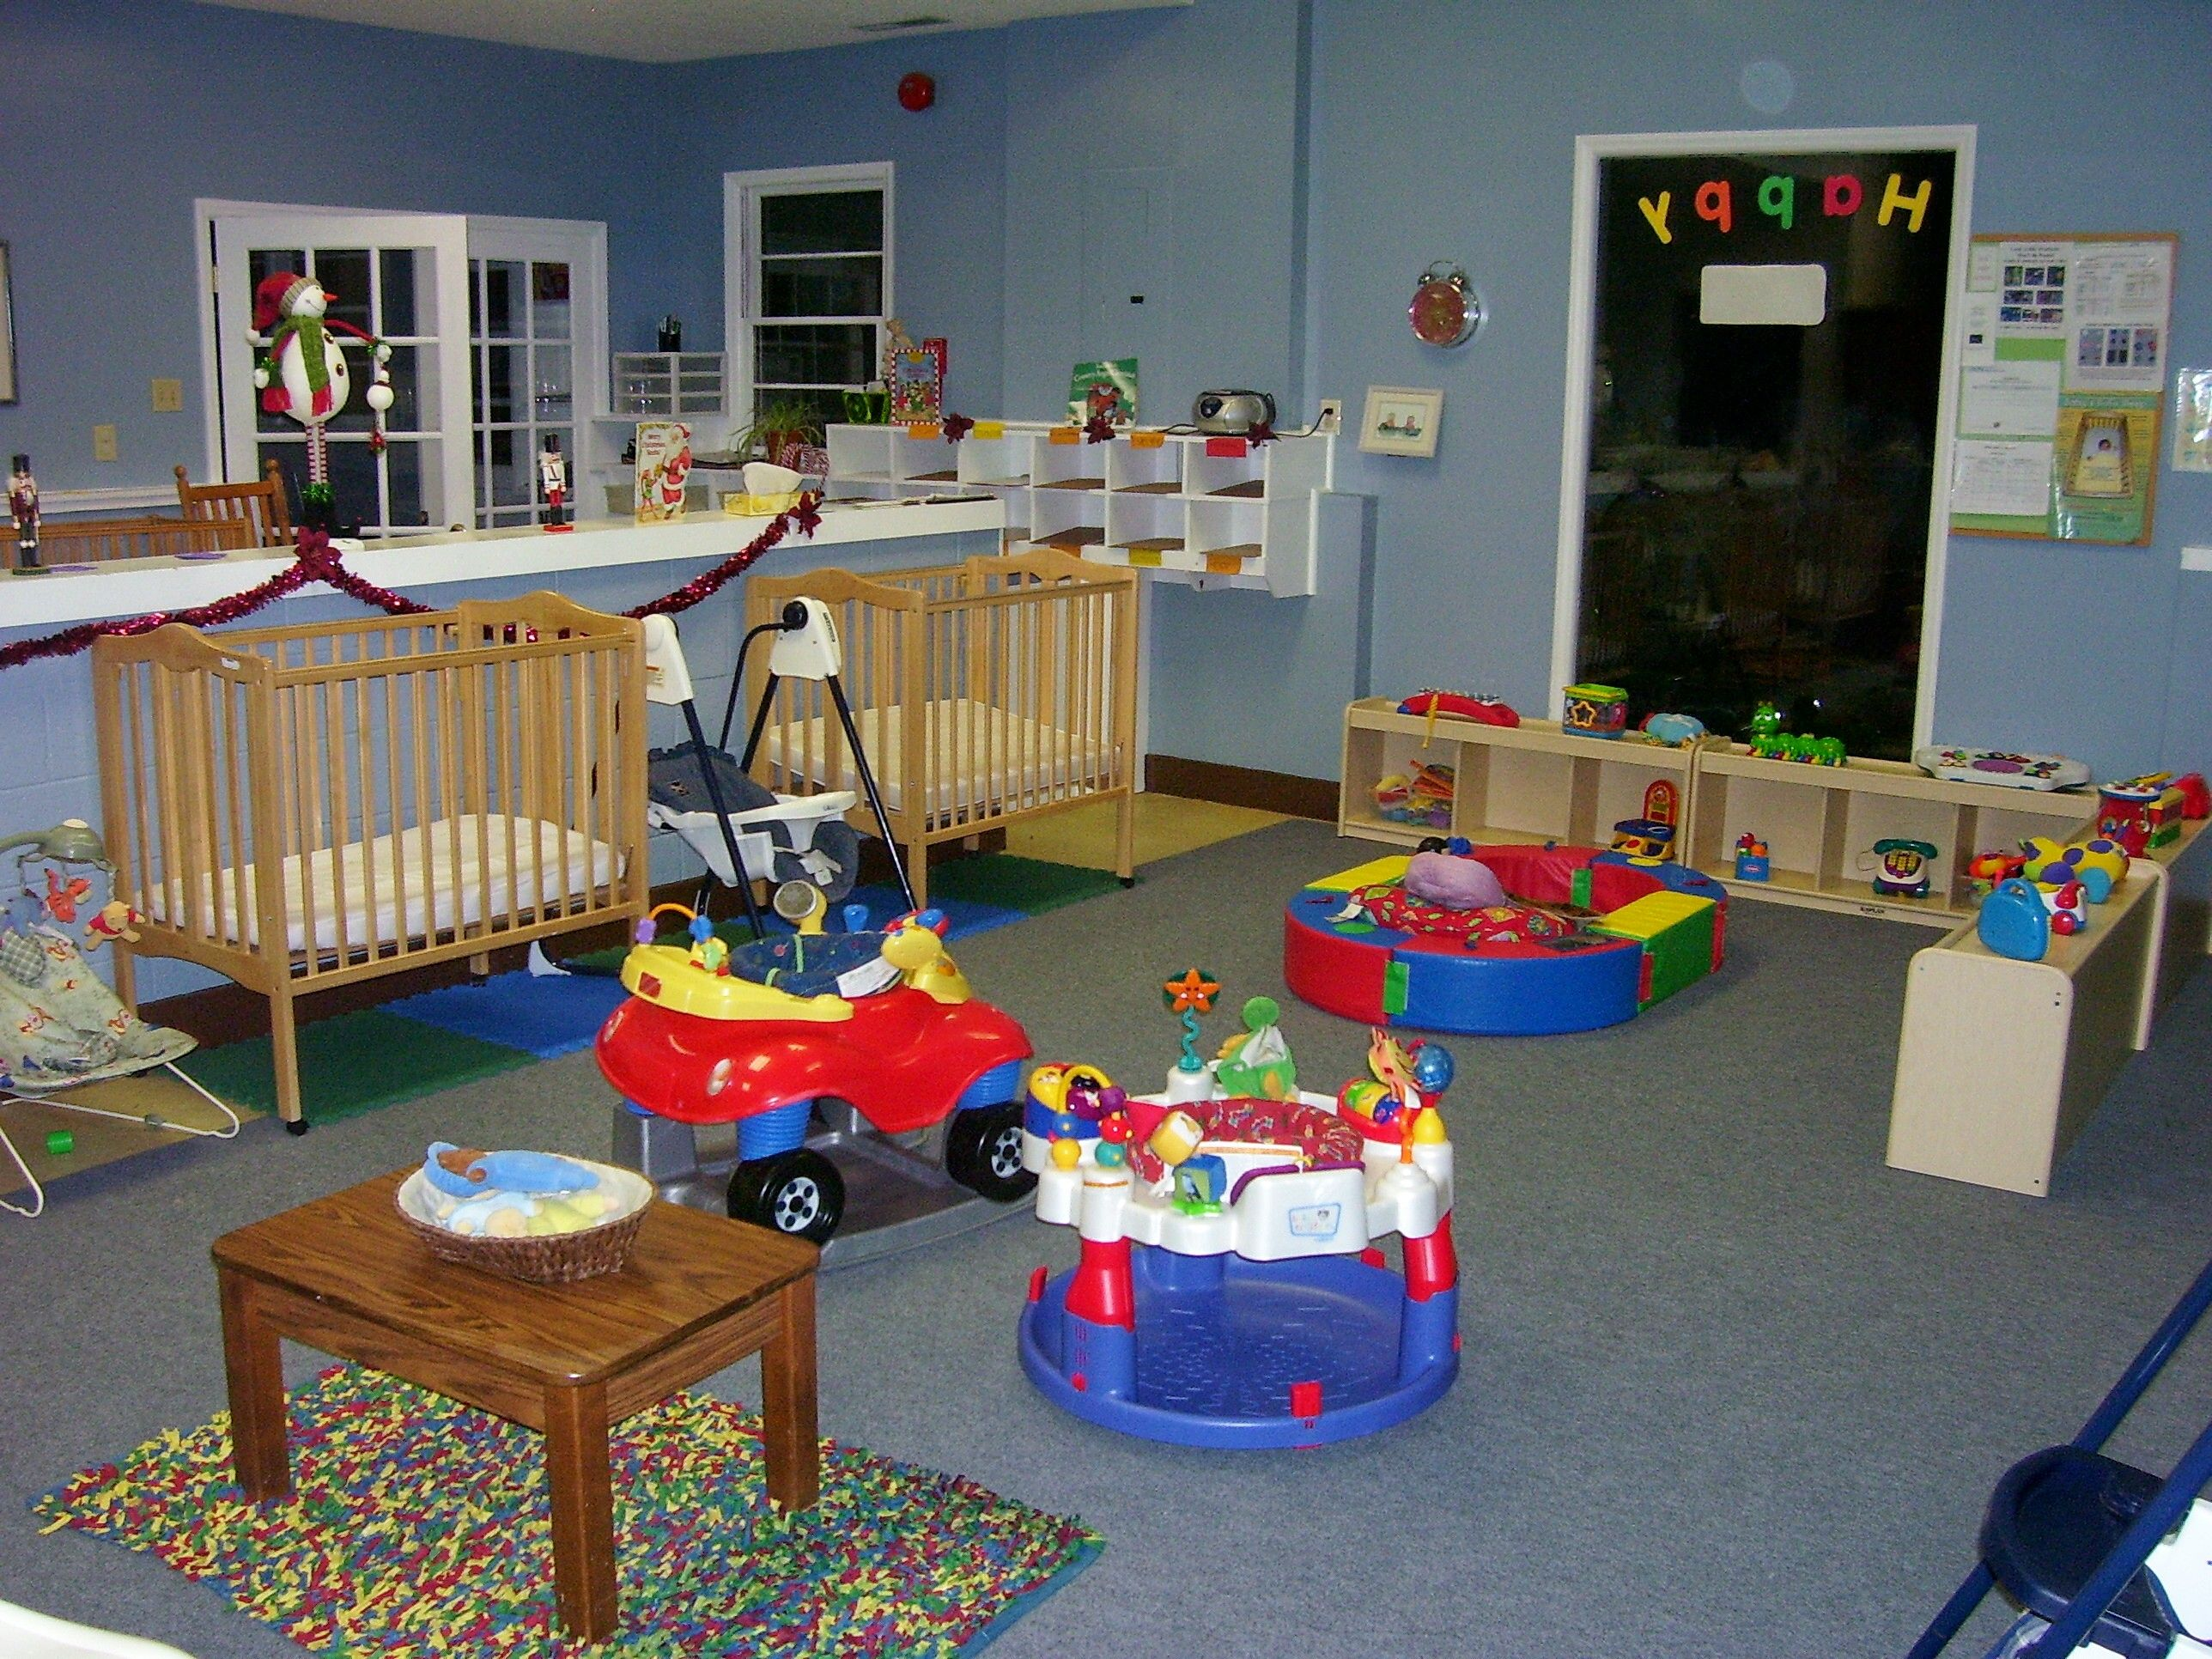 Classroom Decoration Ideas For Montessori ~ Daycare classroom setup montessori preschool infant